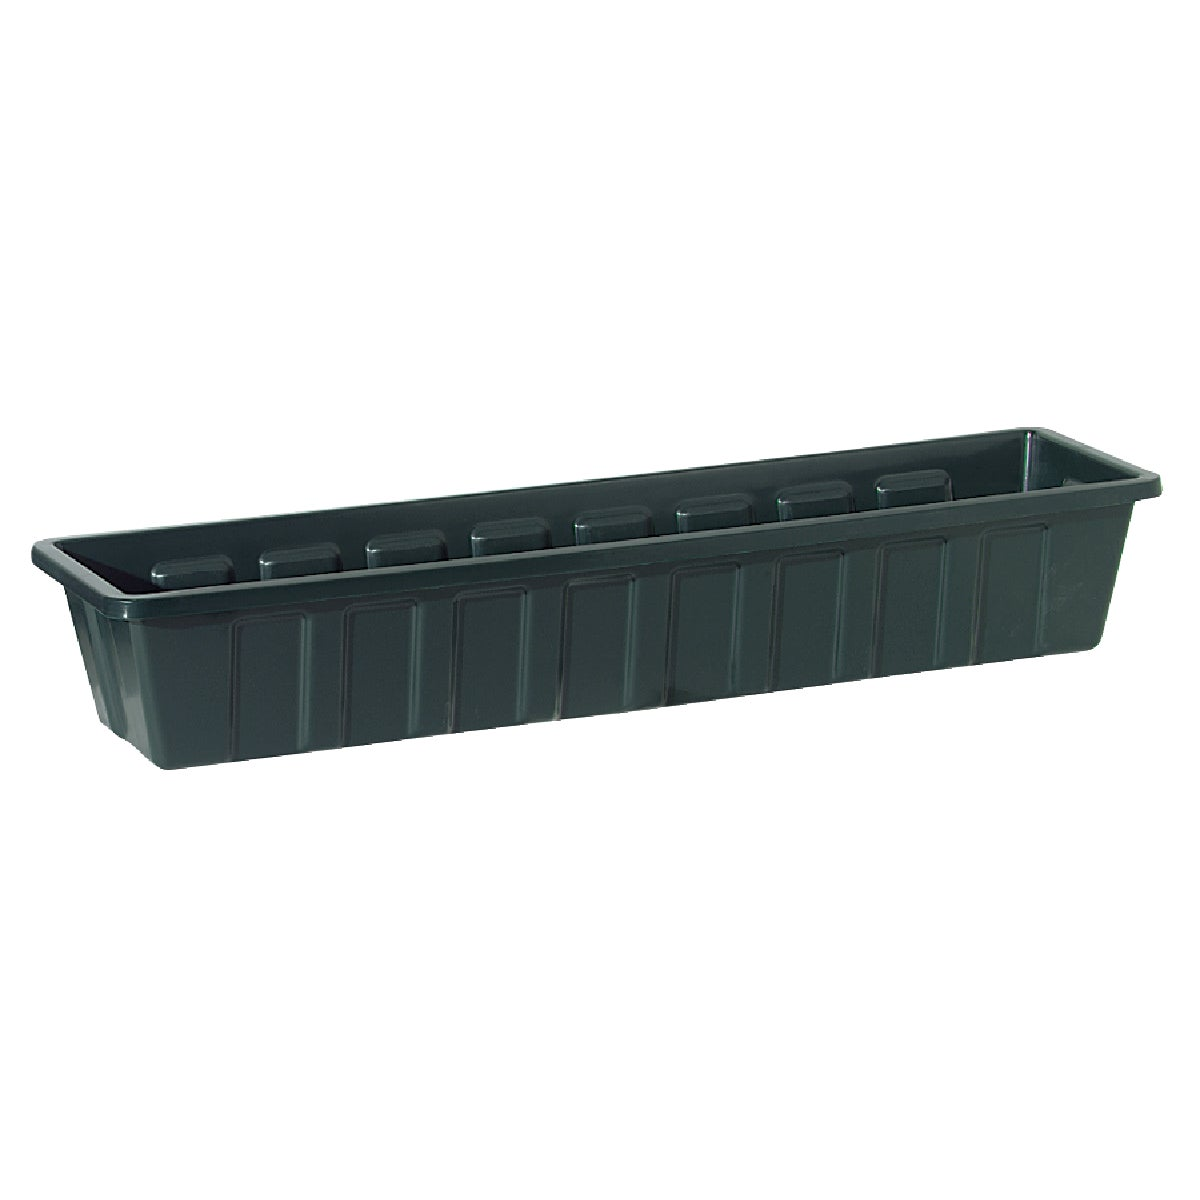 "30"" FLOWER BOX PLANTER - 02301 by Novelty Mfg Co"